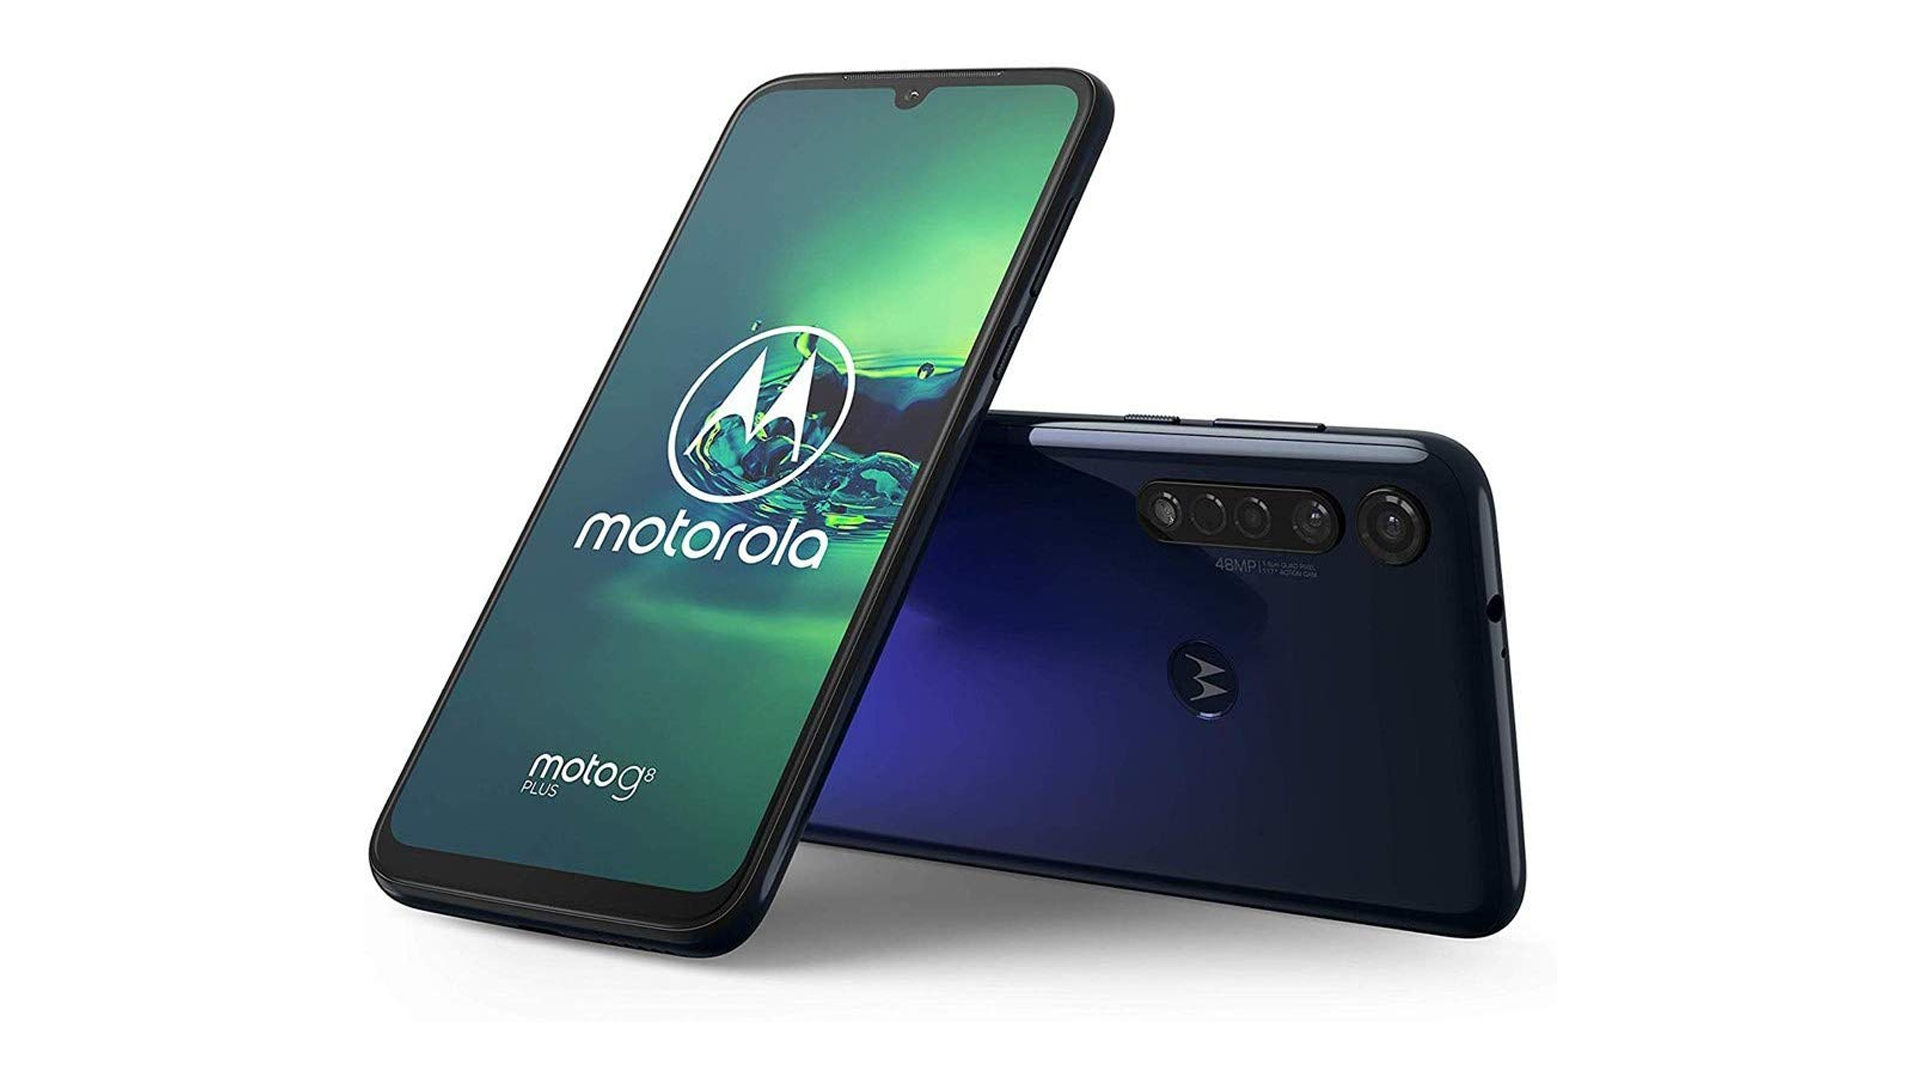 A photo of the Moto G8+